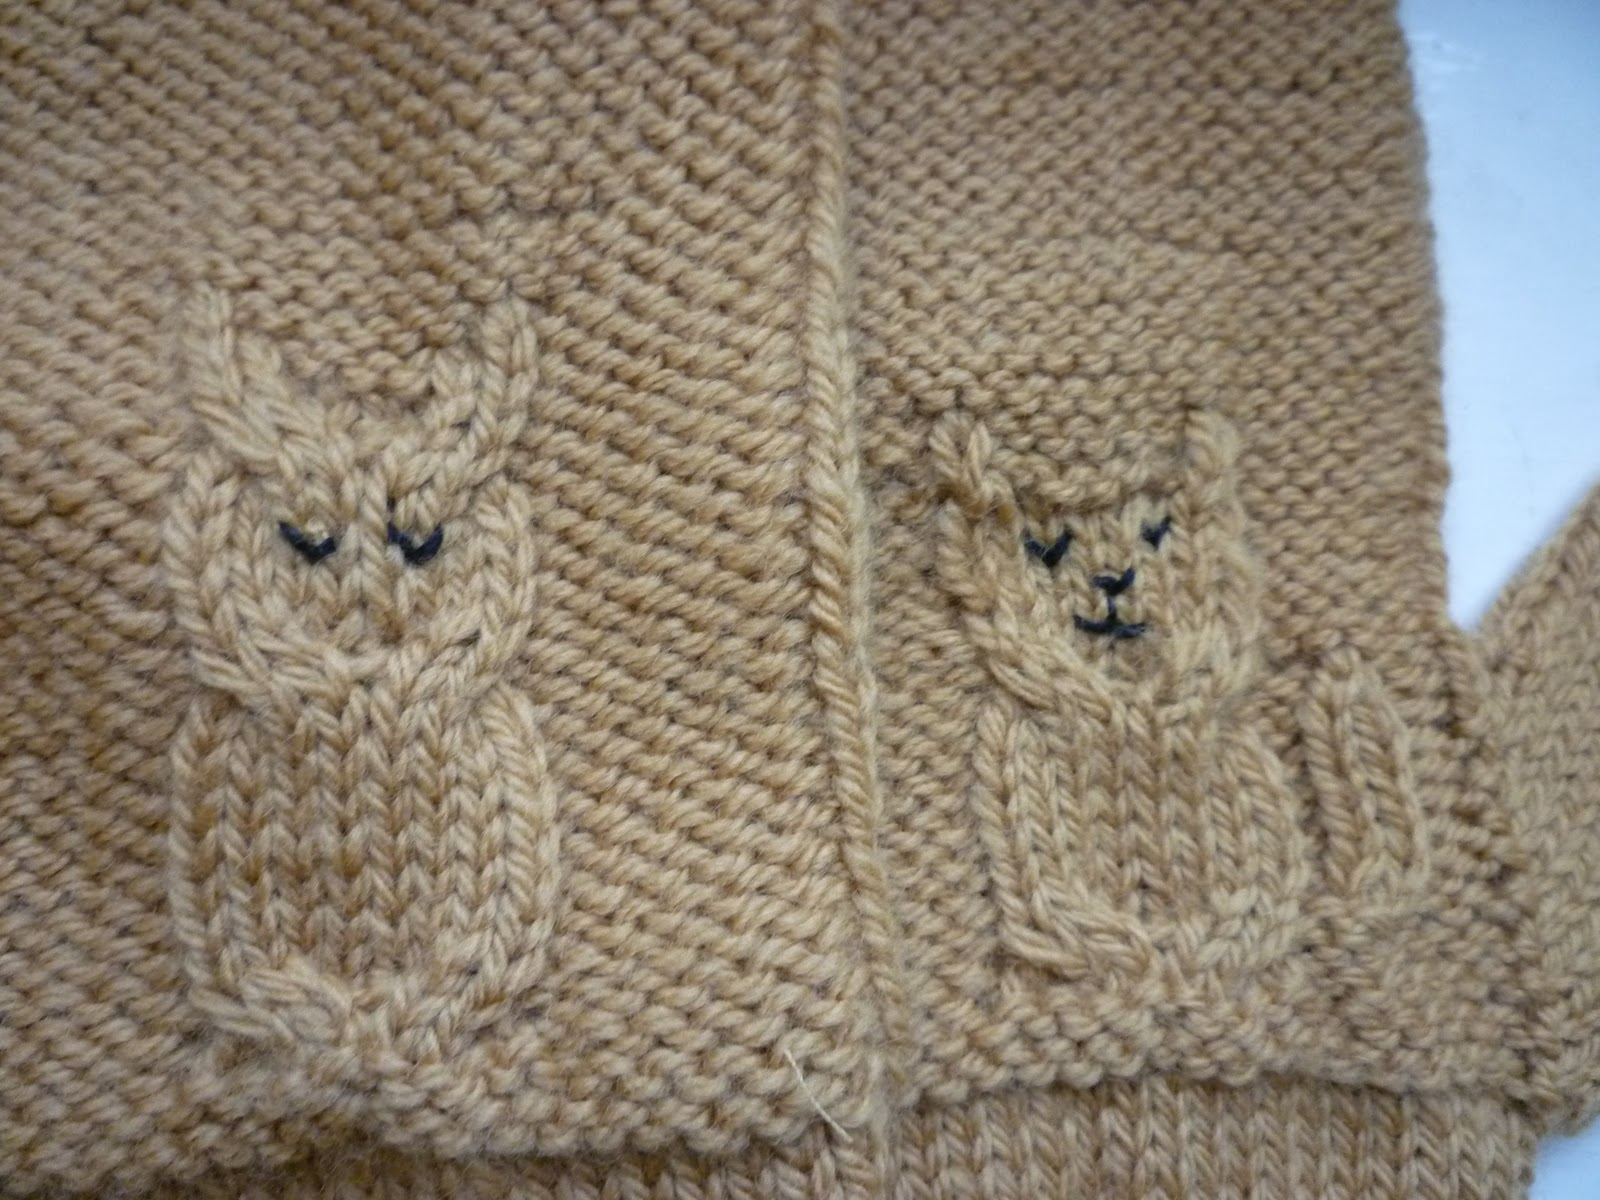 Kestrel Makes: The Owl & The Pussycat Wore Some Mittens